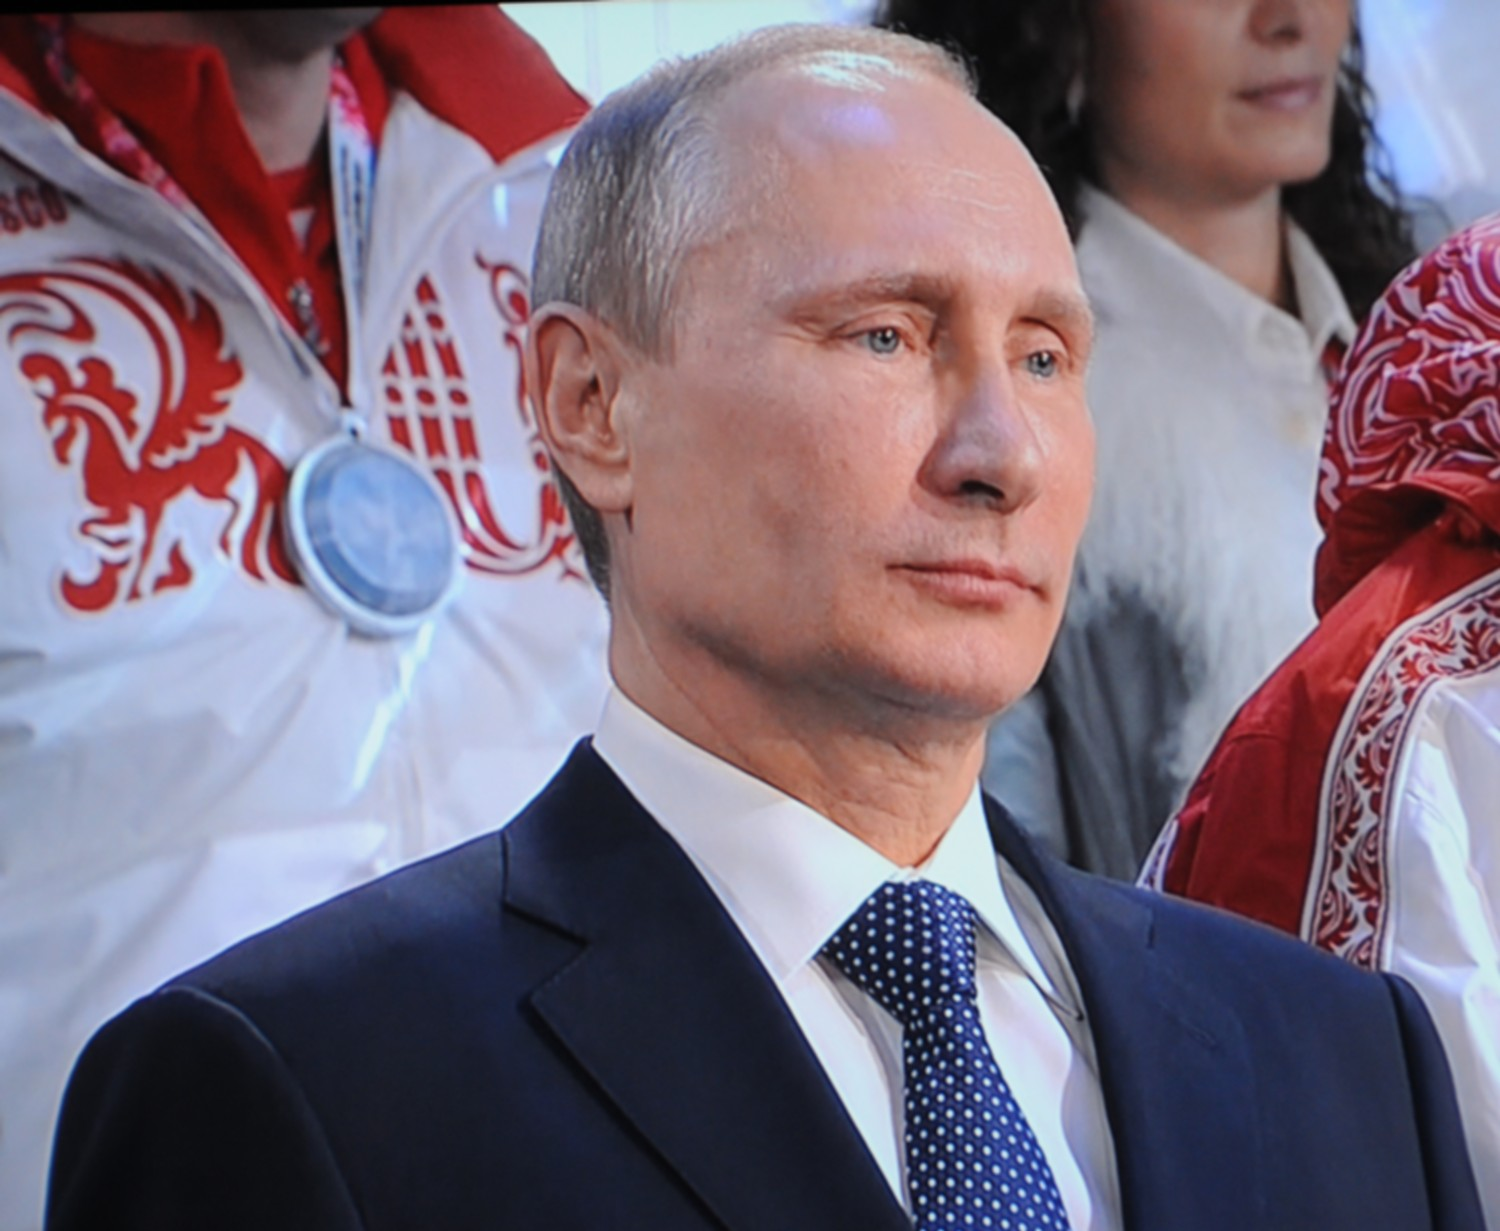 "Russian President Vladimir Putin, at the 2014 Olympics in Sochi. The US has evidence that Putin was directly involved in orchestrating cyber attacks and information dissemination intended to tilt the US election toward Donald Trump's victory. Trump has dismissed the unified analysis of more than a dozen US intelligence agencies and has indicated he would be a close ally of Putin or as Hillary Clinton put it during the campaign, ""Putin's Puppet.""© 2016 Karen Rubin/news-photos-features.com"